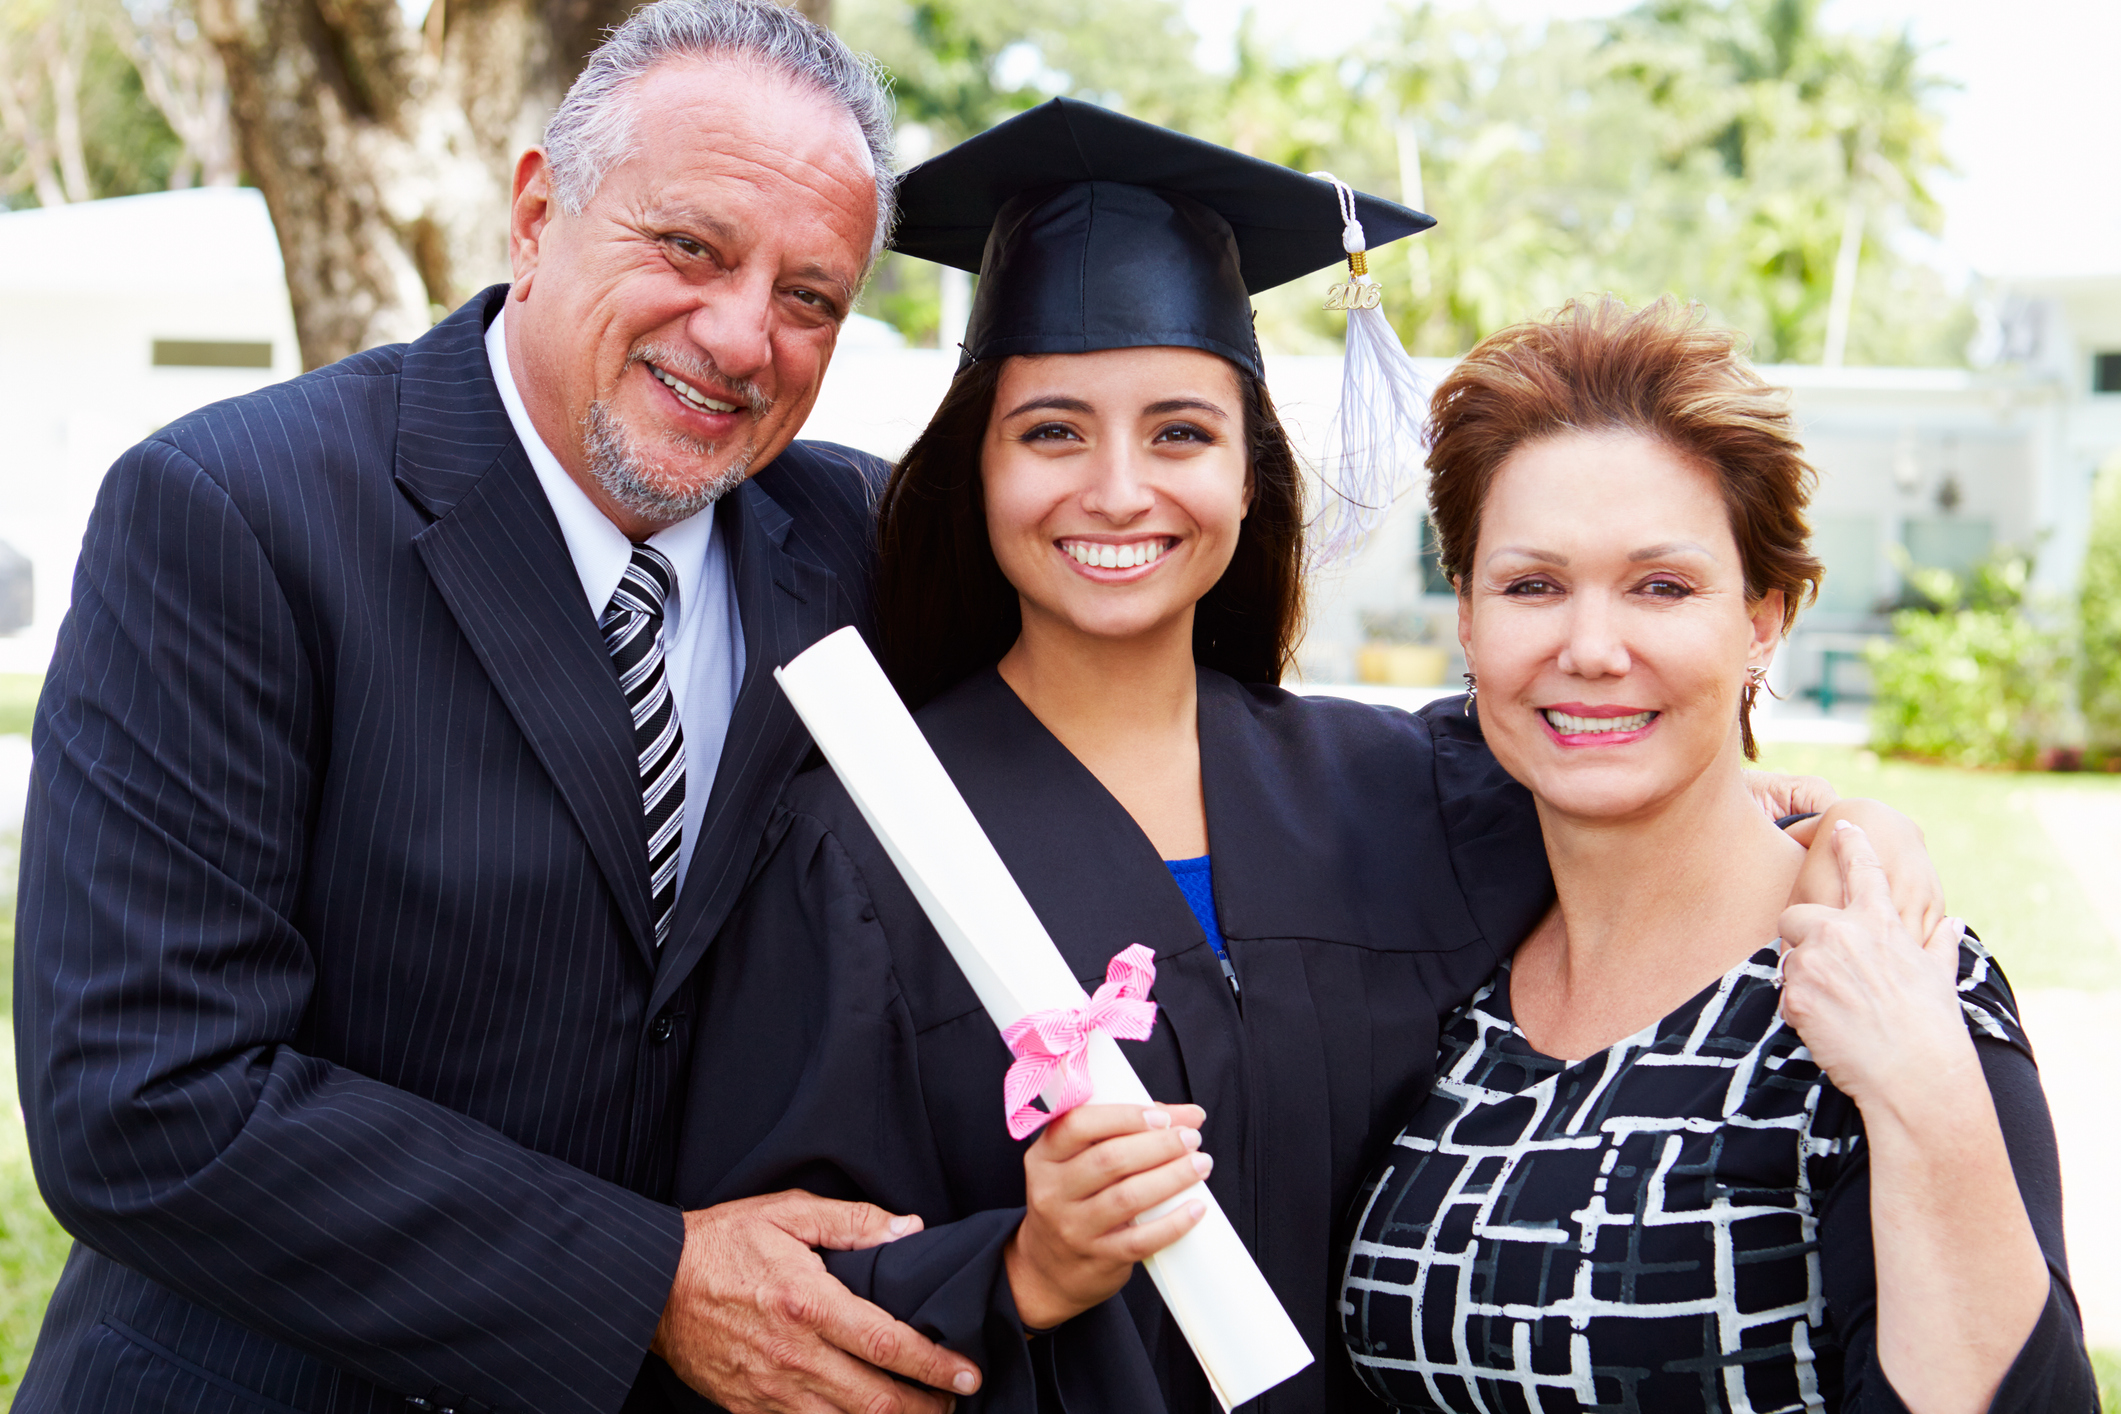 Parents with college student at graduation